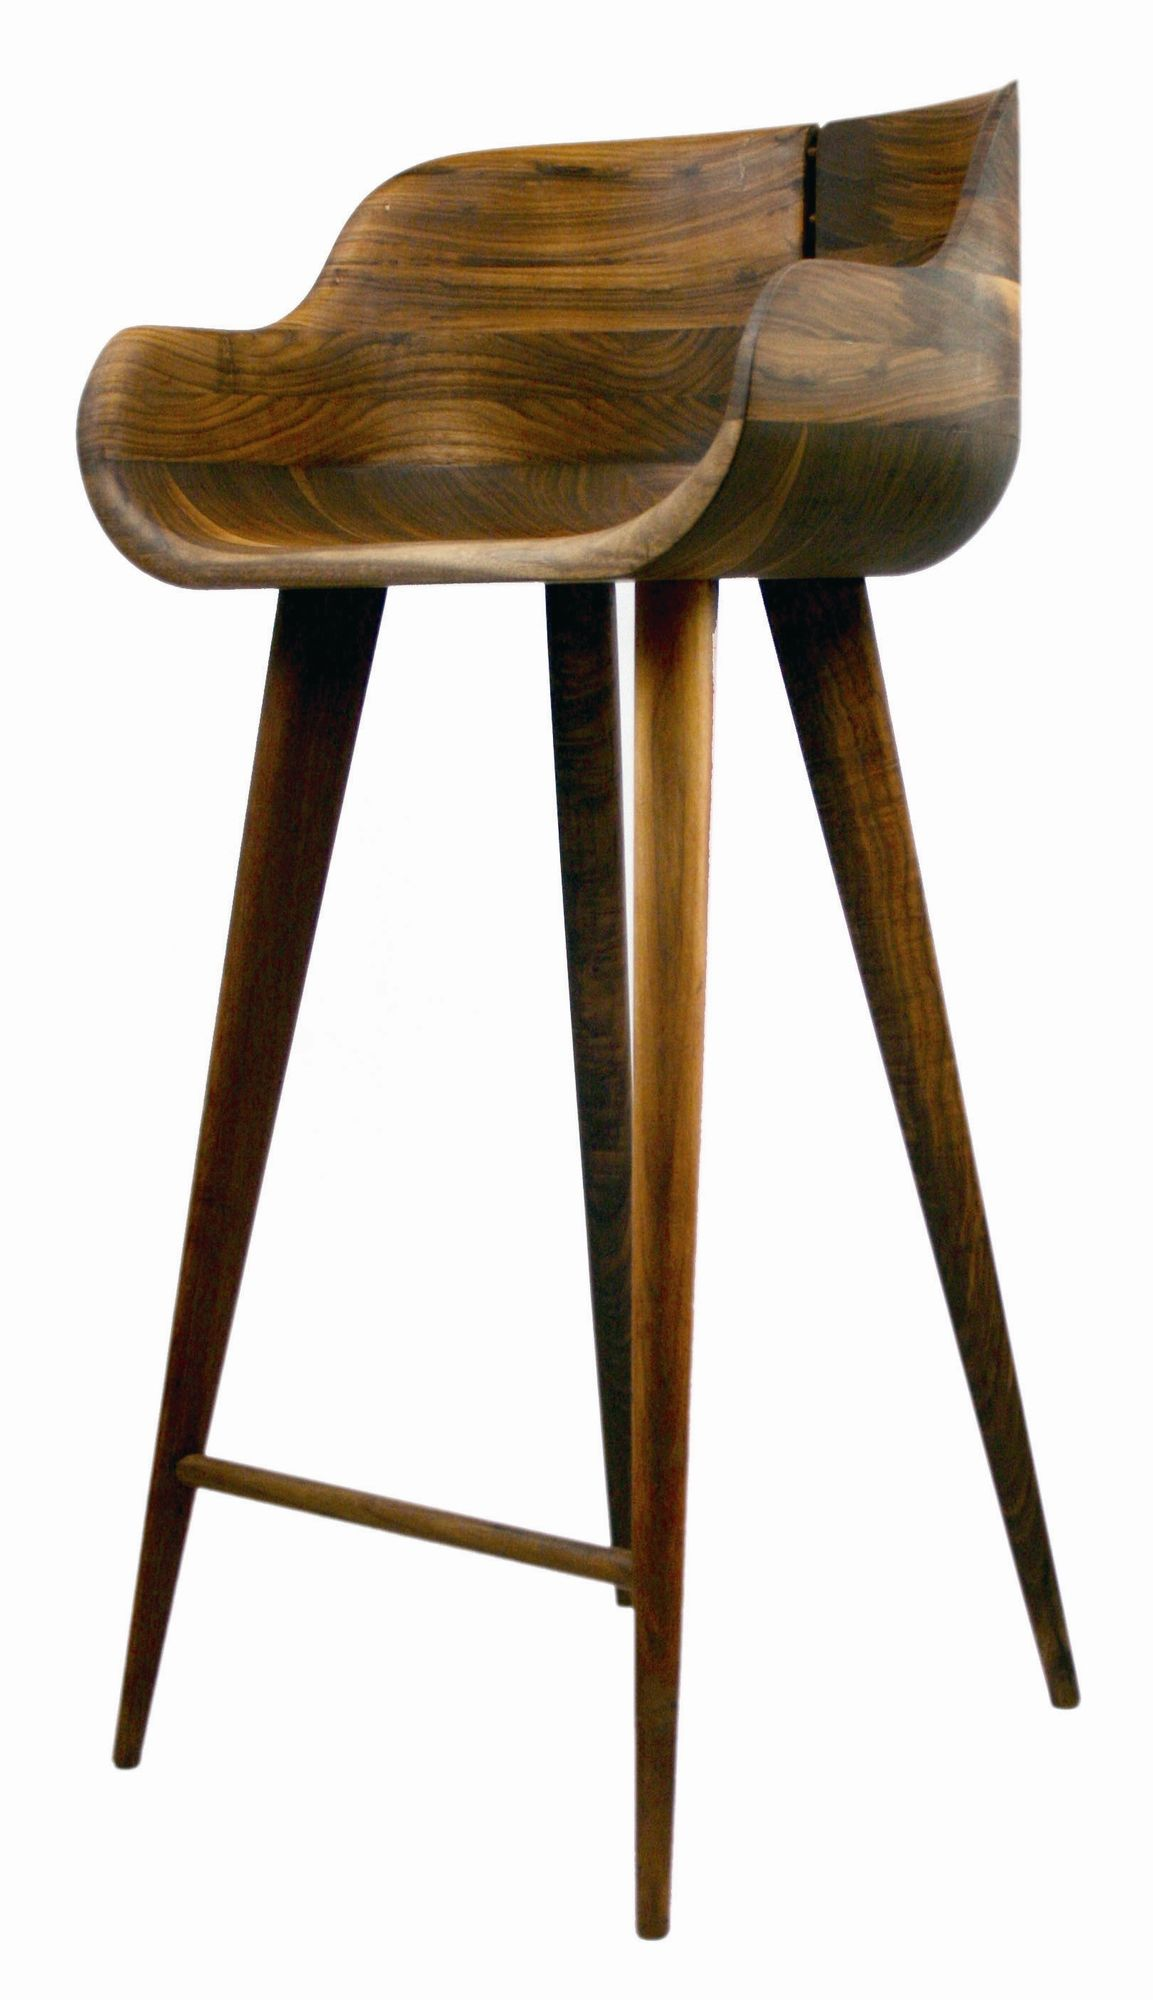 Modern Wood Bar Stool Walnut Counter Stool Just What I Need For My Bar Seeing